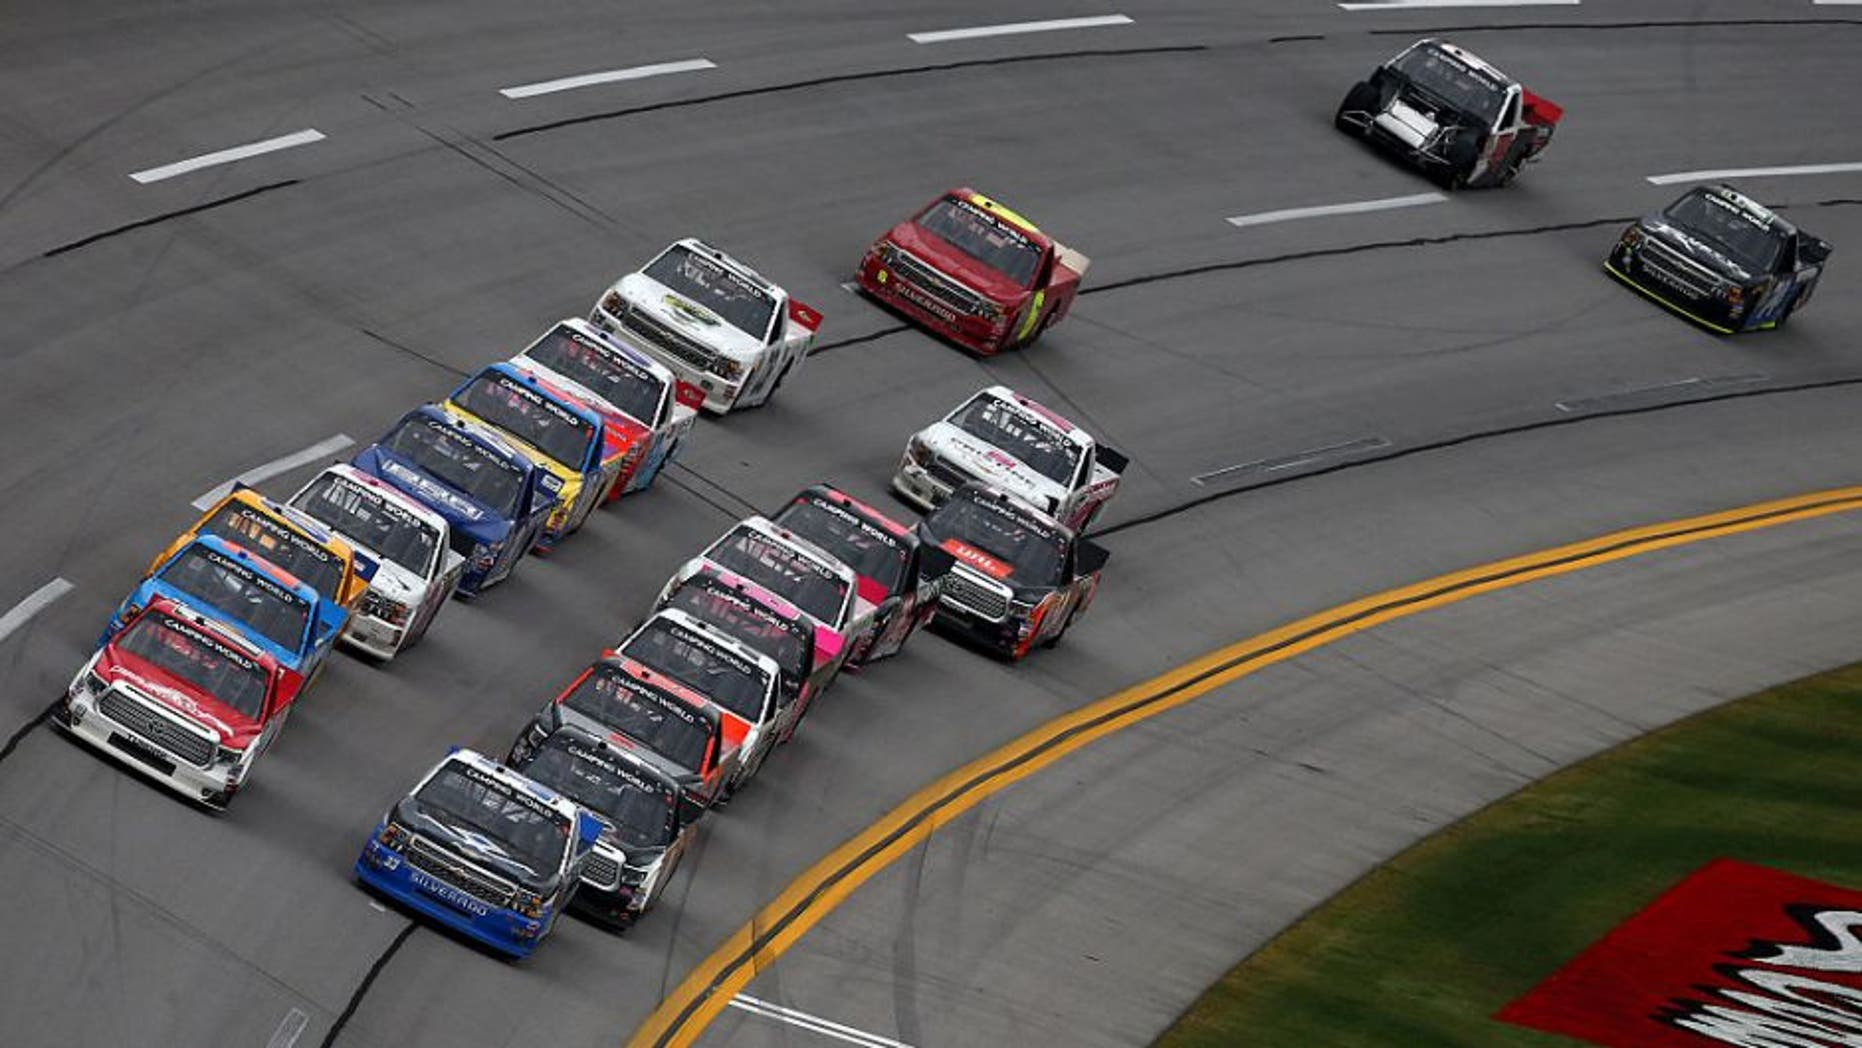 TALLADEGA, AL - OCTOBER 24: Timothy Peters, driver of the #17 Red Horse Racing Toyota, and Brandon Jones, driver of the #33 Wittichen Supply Company Chevrolet, lead the field to a restart during the NASCAR Camping World Truck Series fred's 250 at Talladega Superspeedway on October 24, 2015 in Talladega, Alabama. (Photo by Tom Pennington/Getty Images)